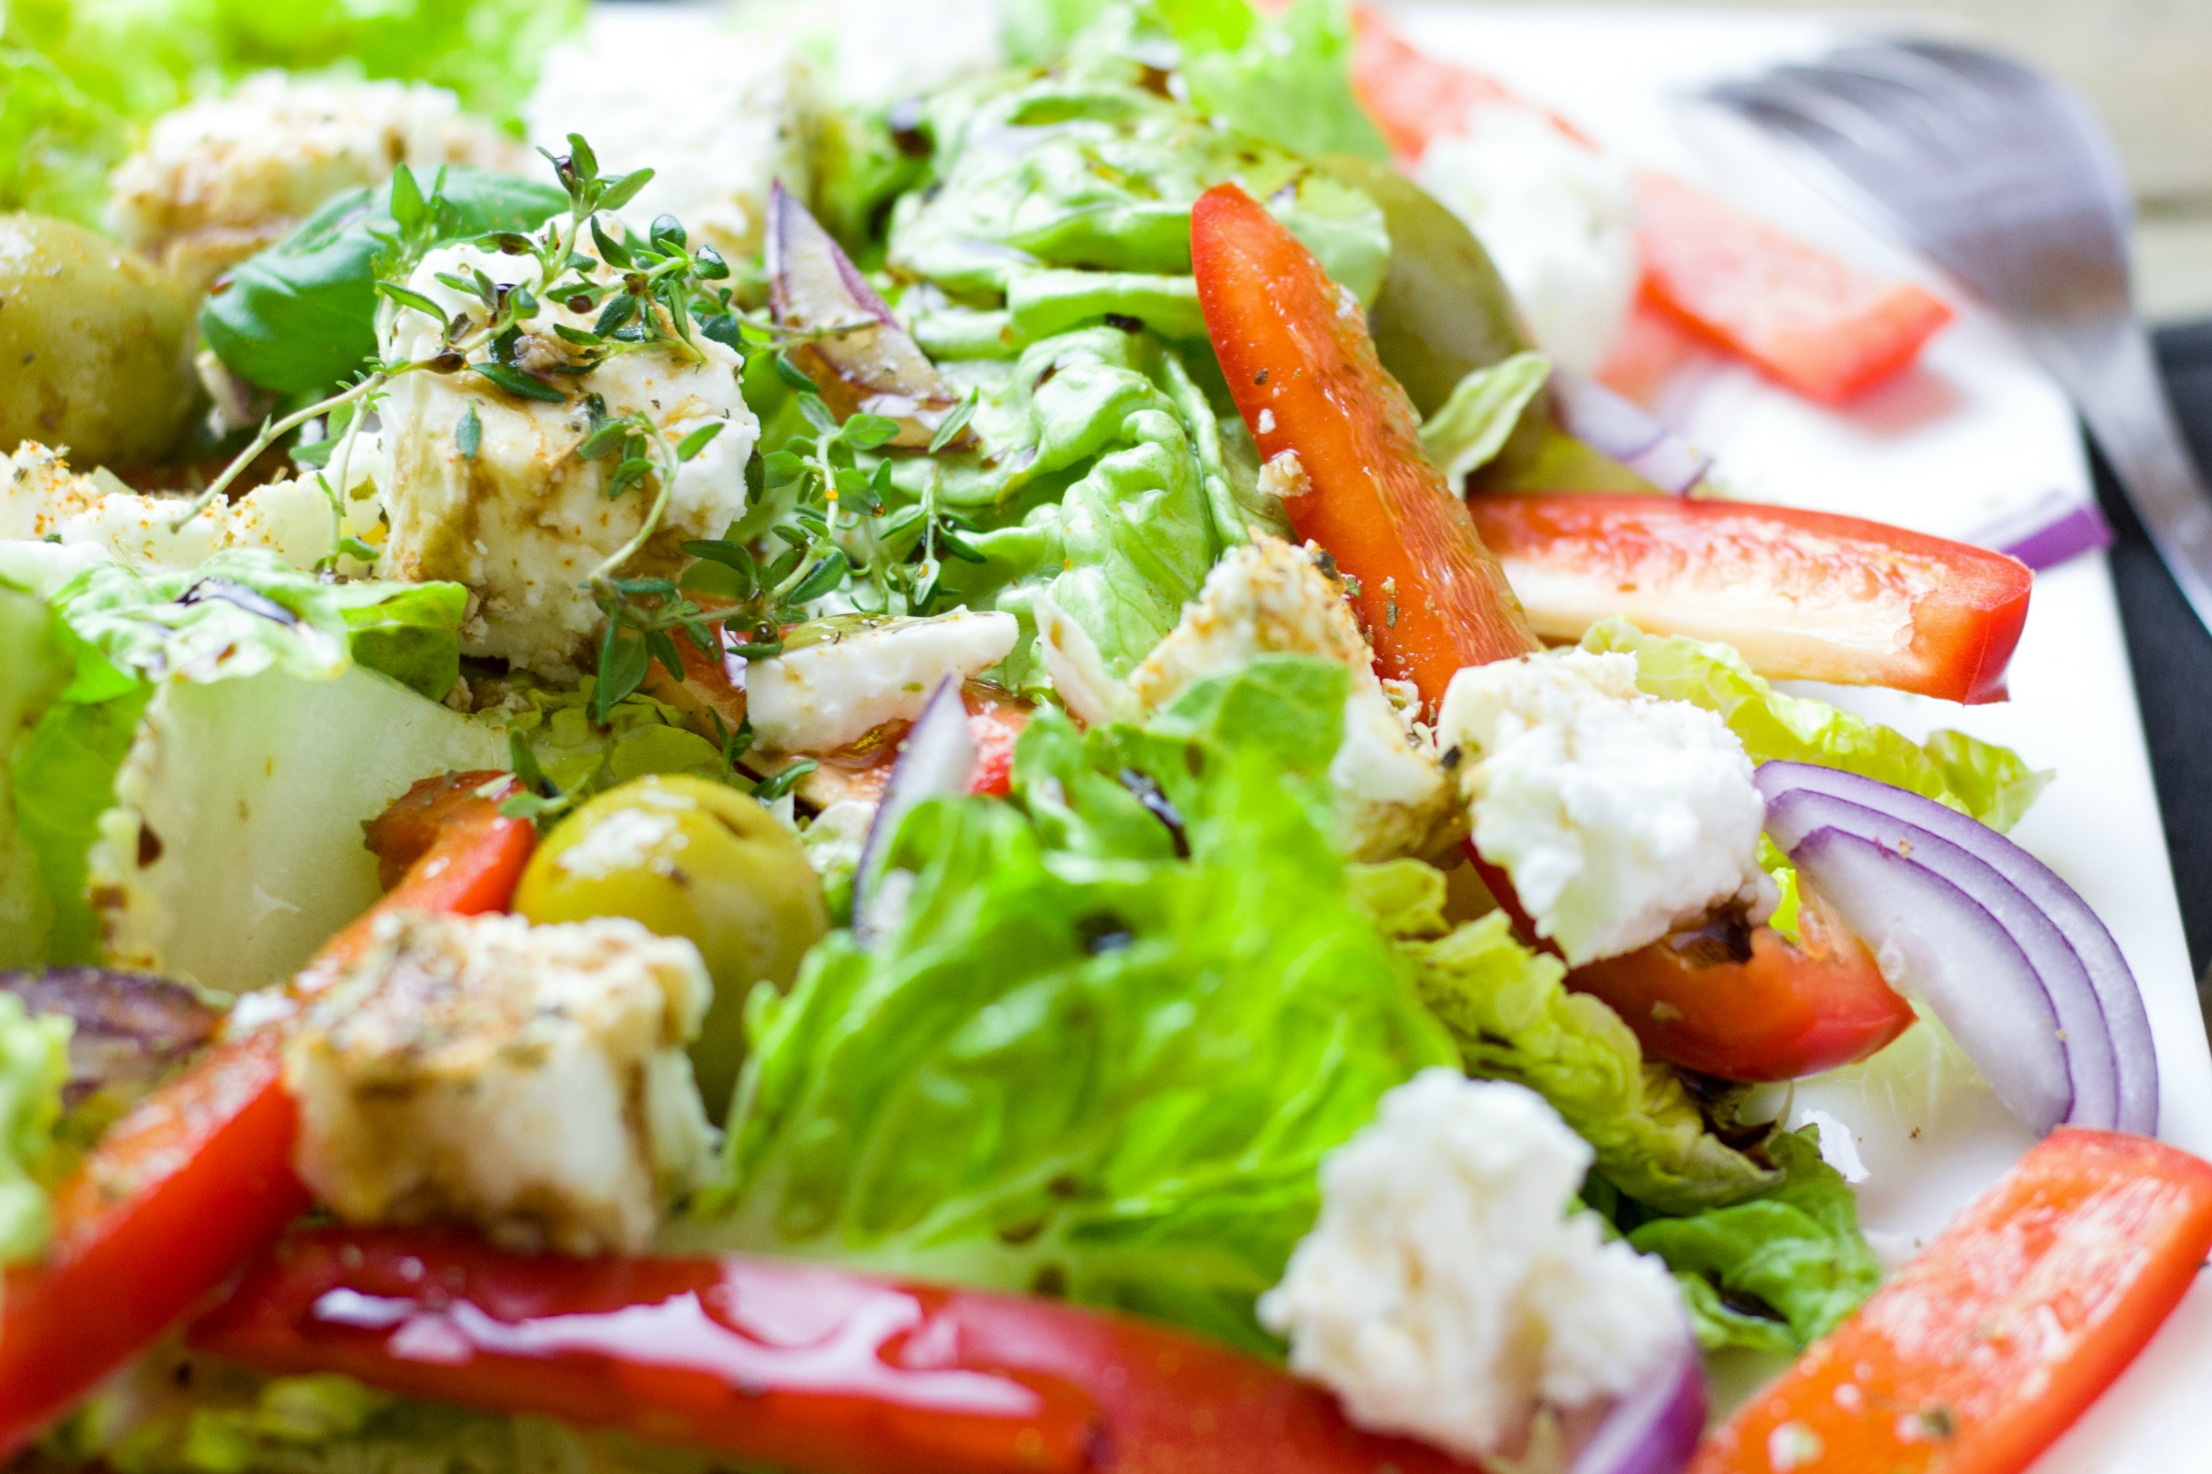 Fresh salads kick off dinner for a fundraising gala at Hazeltine National Golf Club